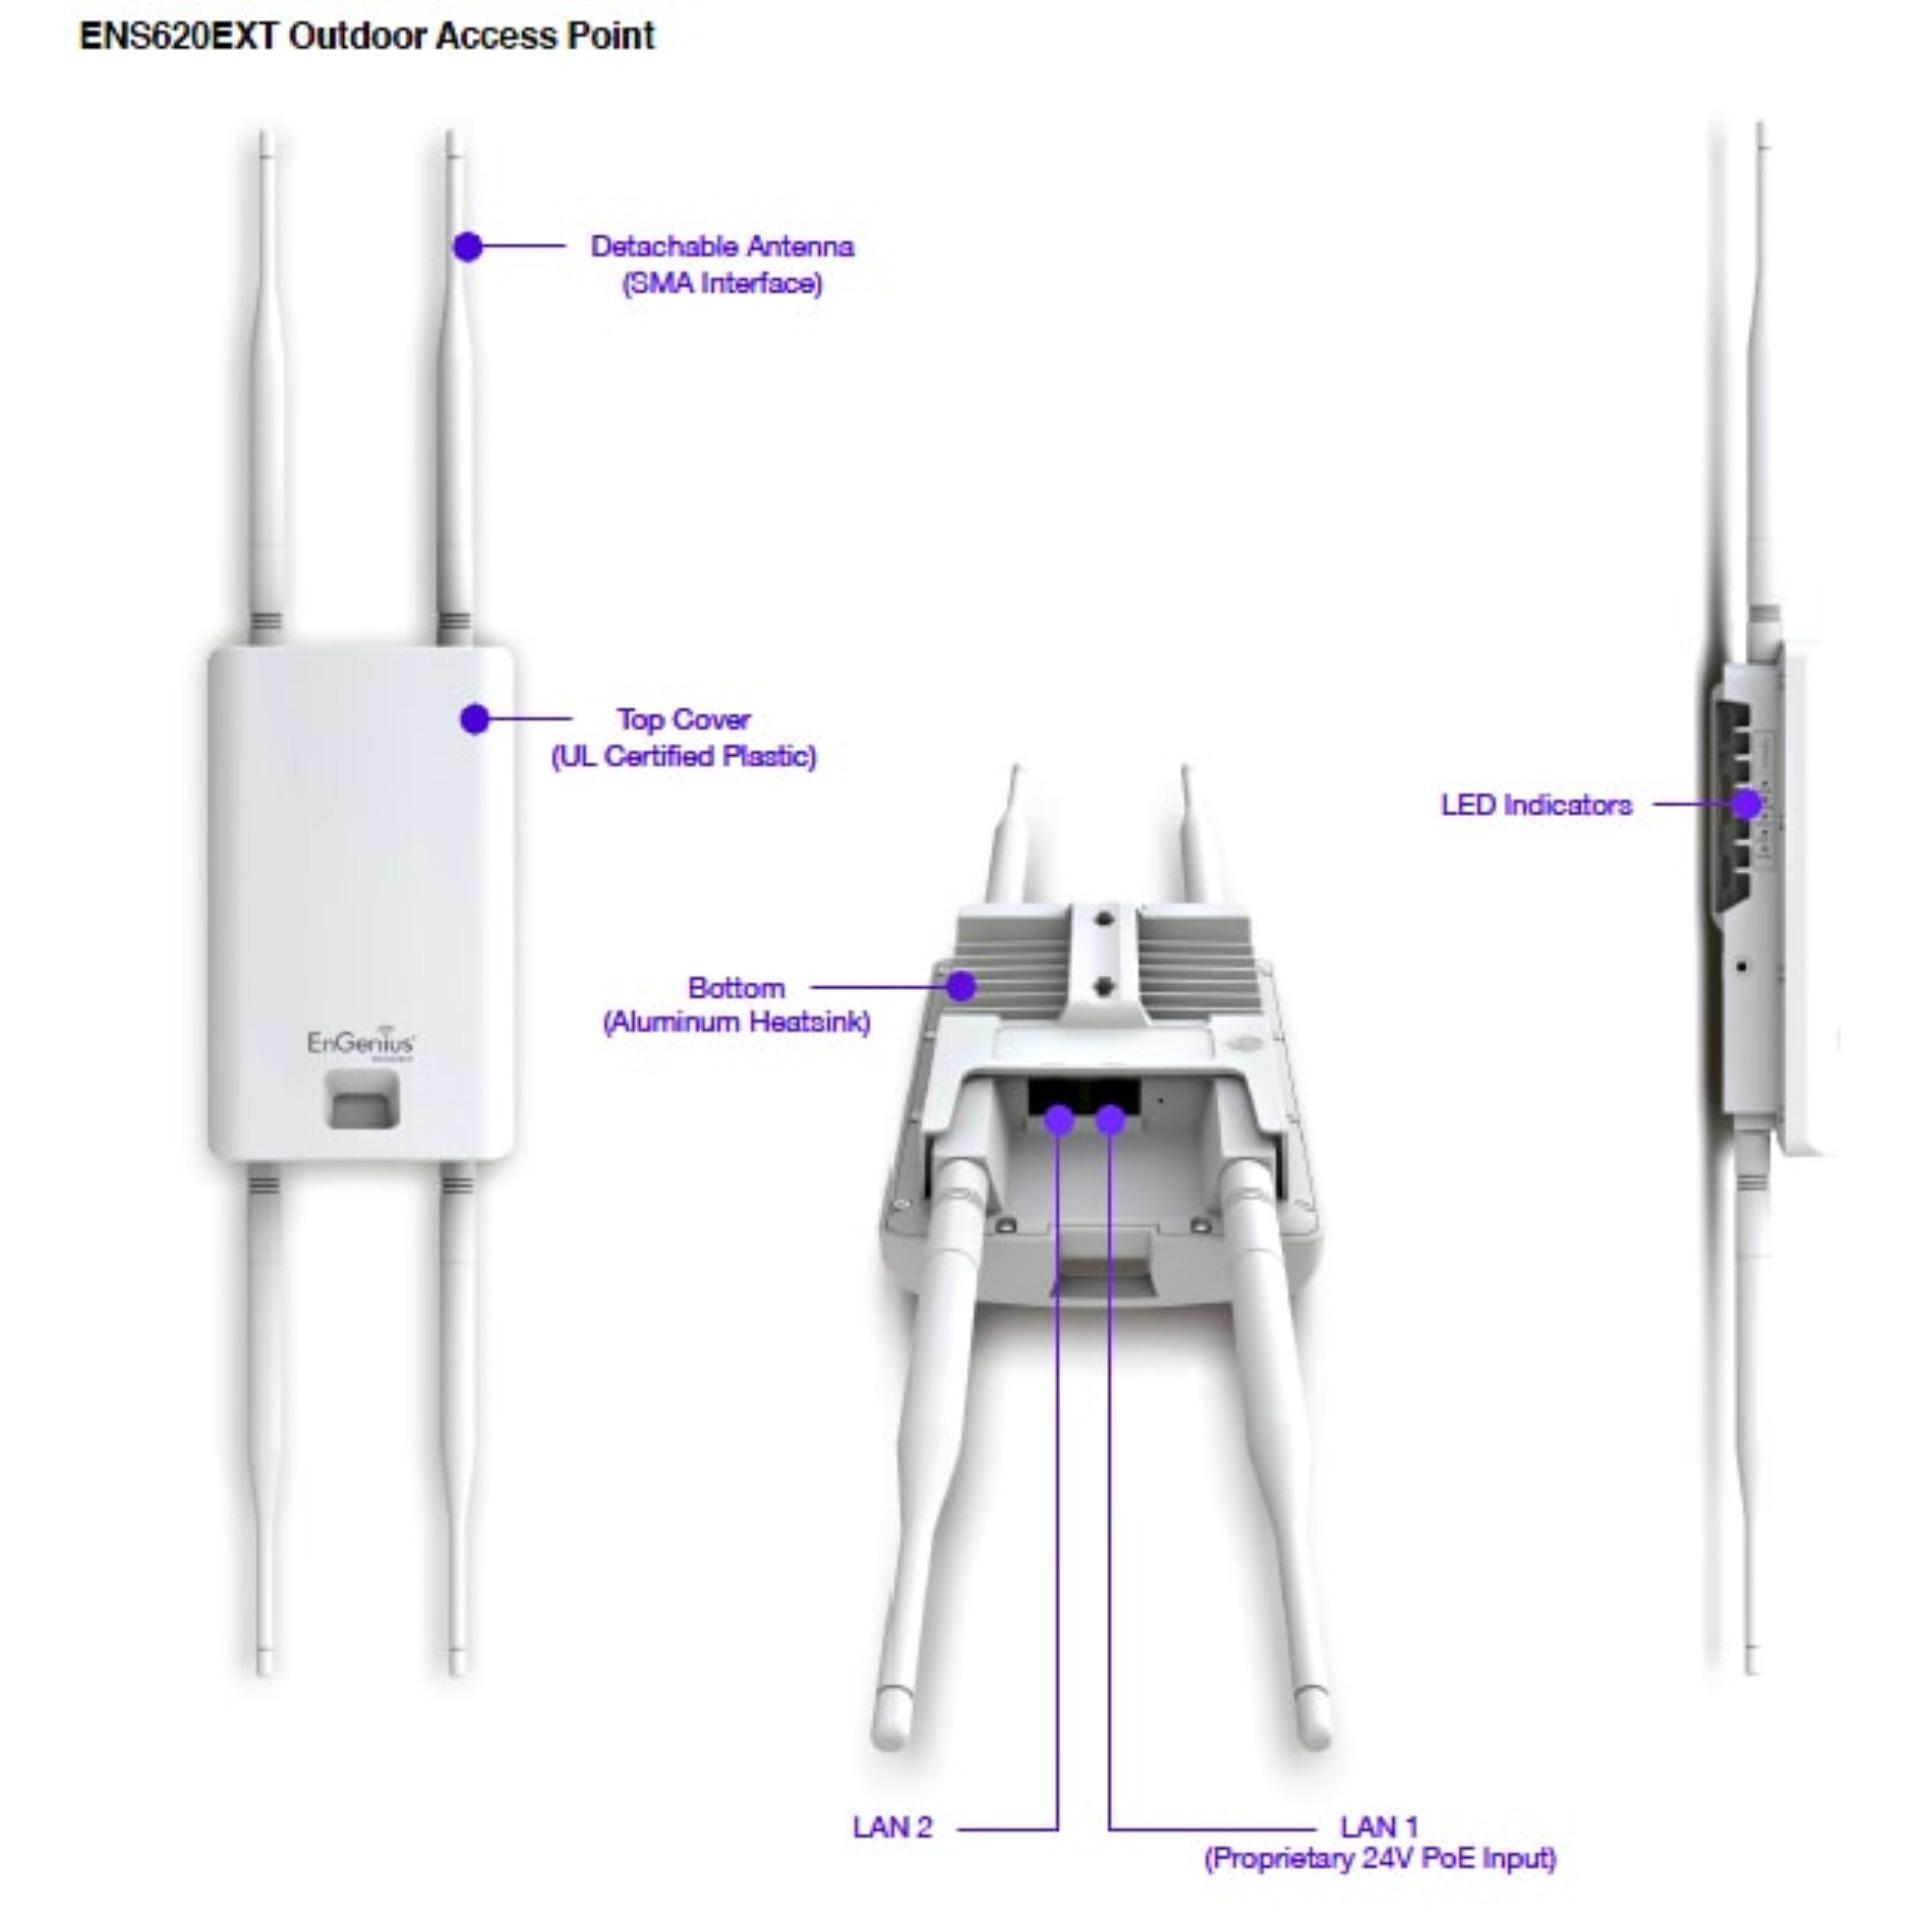 Bộ Phát Wifi Engenius Ens620Ext Dual-Band Ac1300 Outdoor Access Point